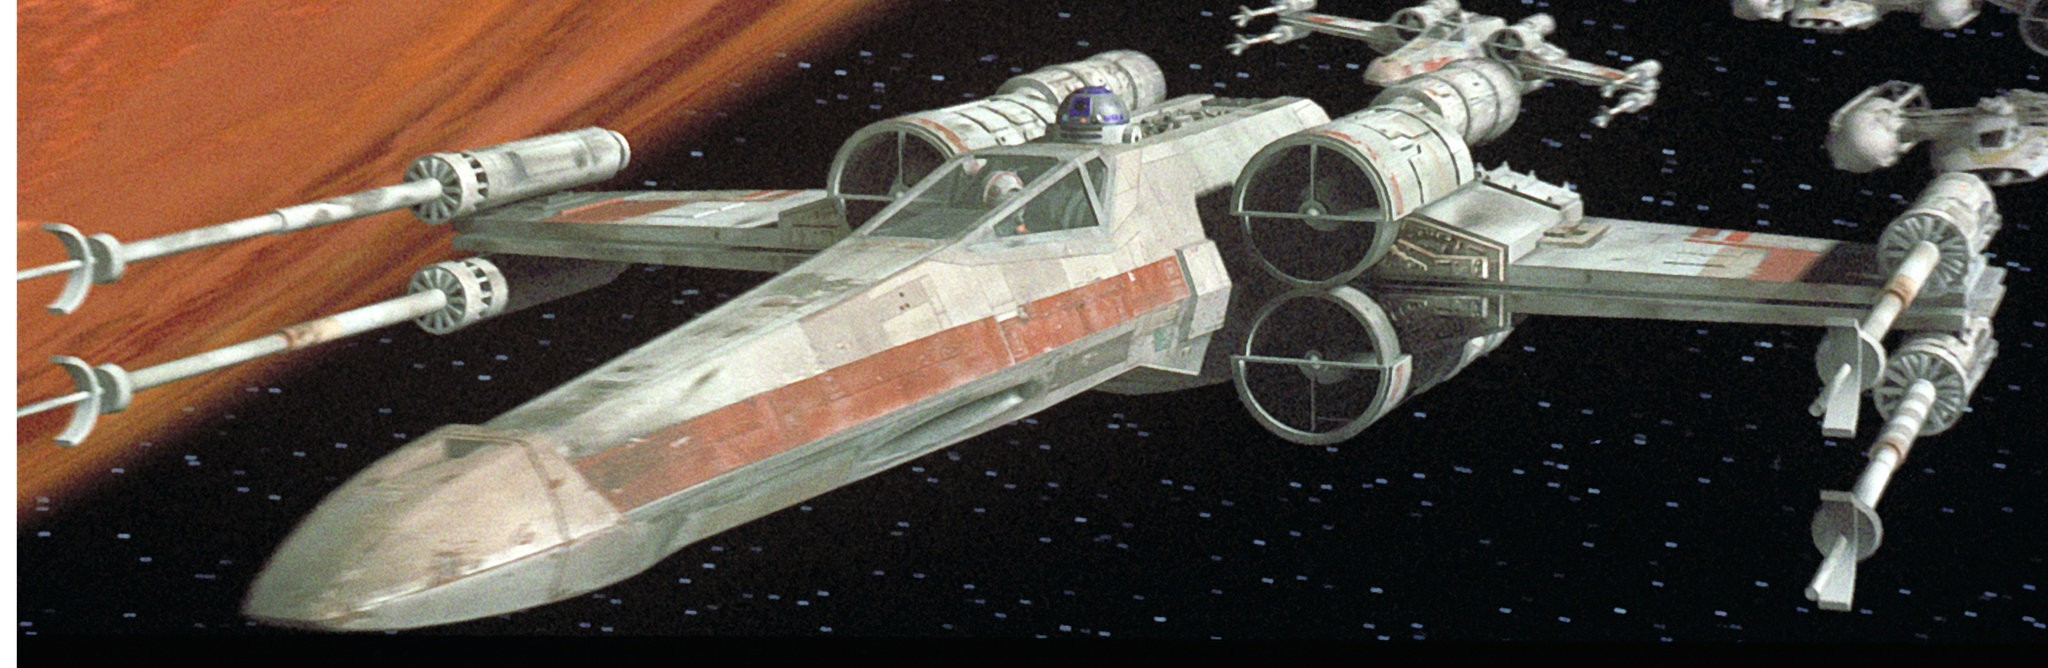 Star Wars In The Rocket City Inside The Science Of Episode Iv With Aerodynamics Holograms And Binary Suns Al Com